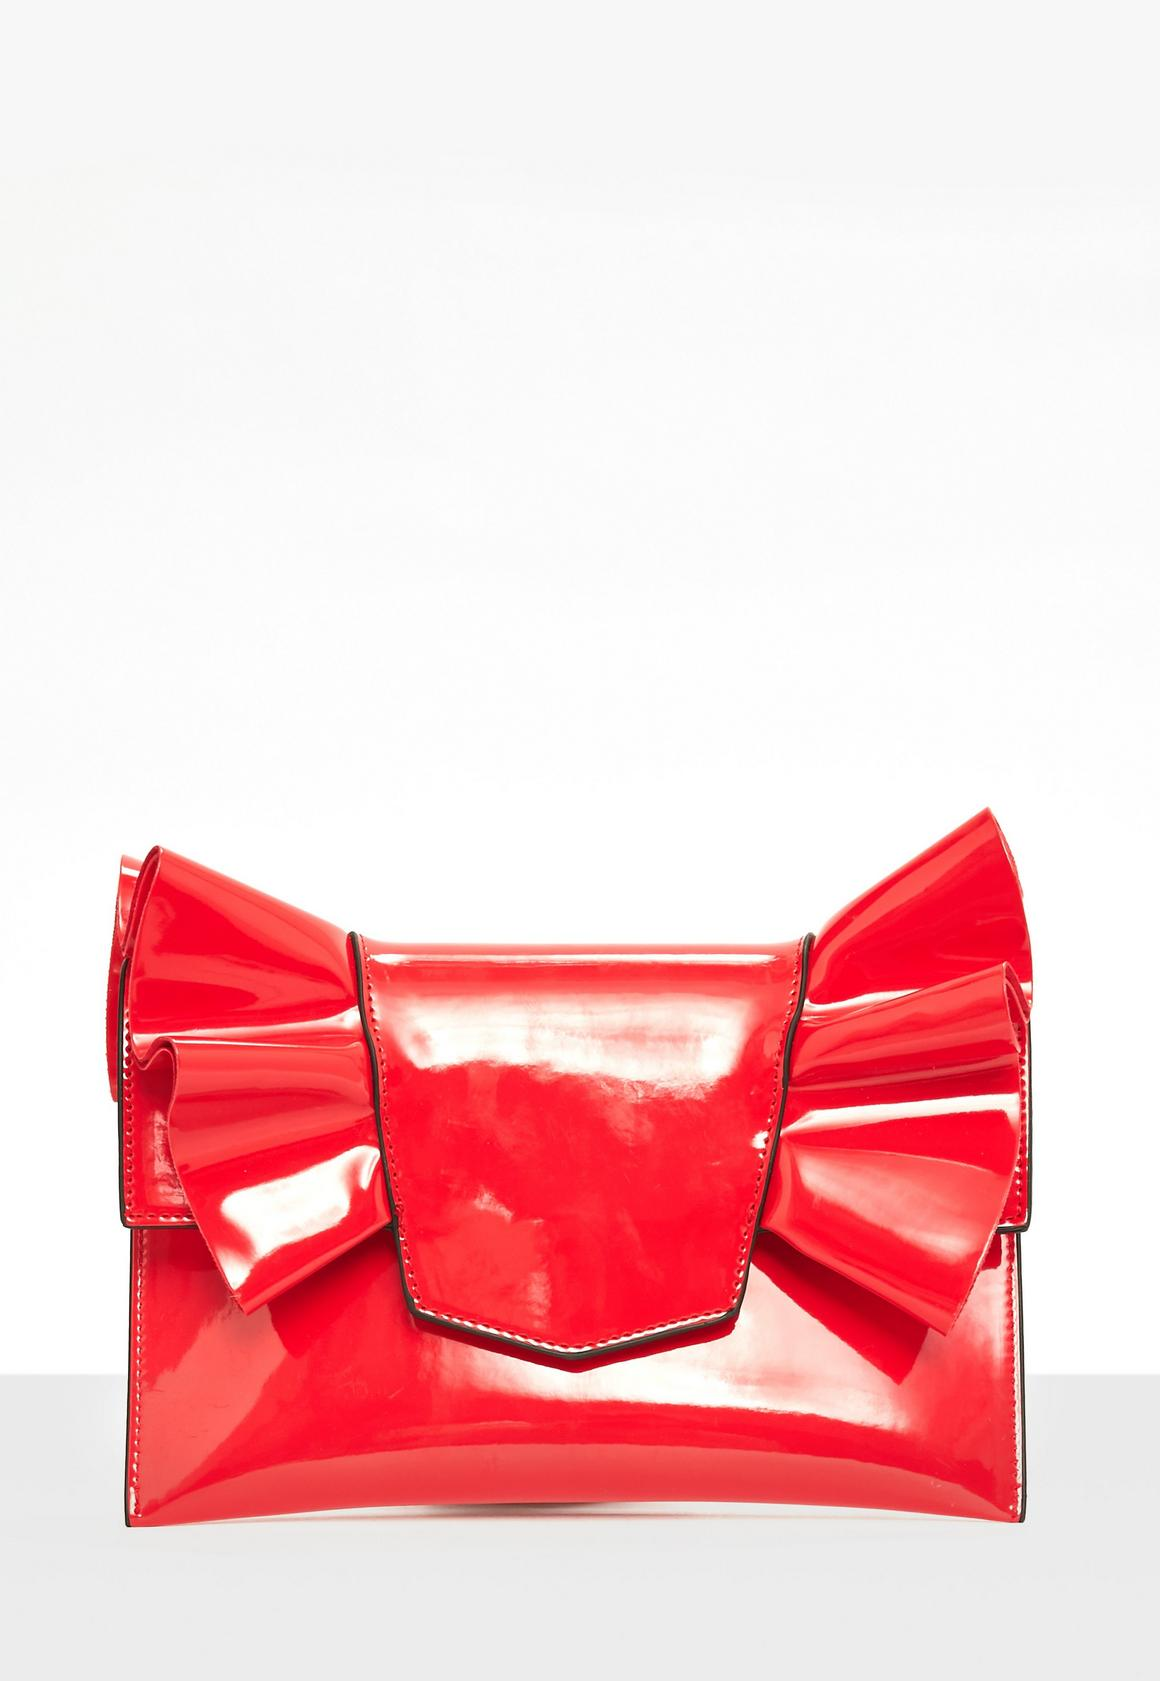 Red Patent Bow Clutch Bag | Missguided